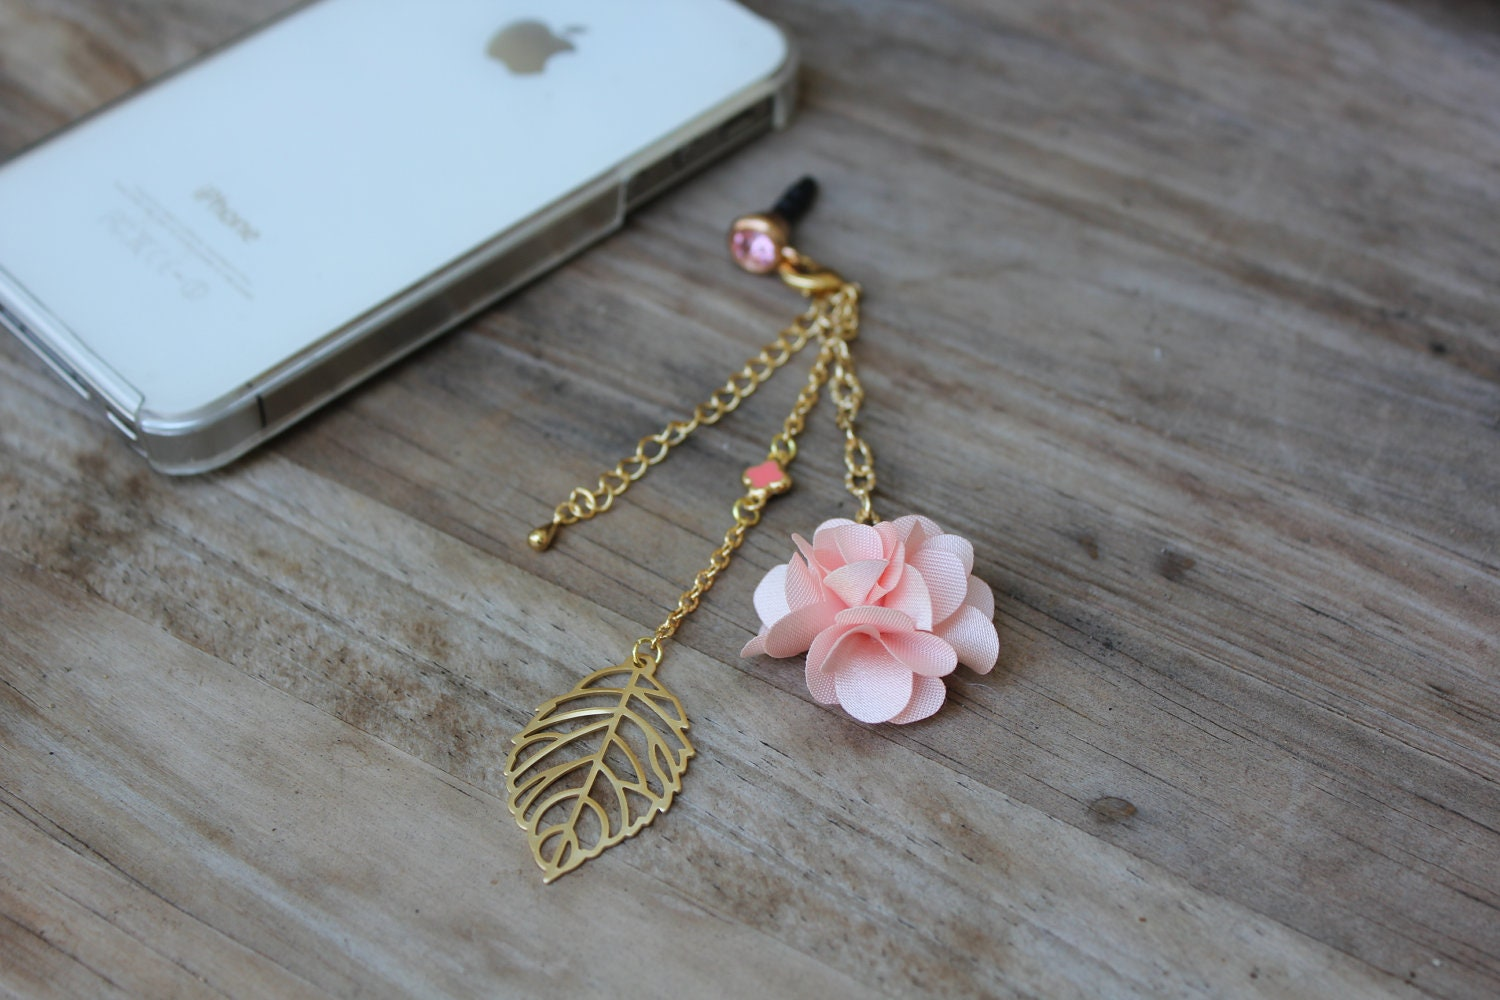 handmade cell phone charm japanese kawaii jewelry flower